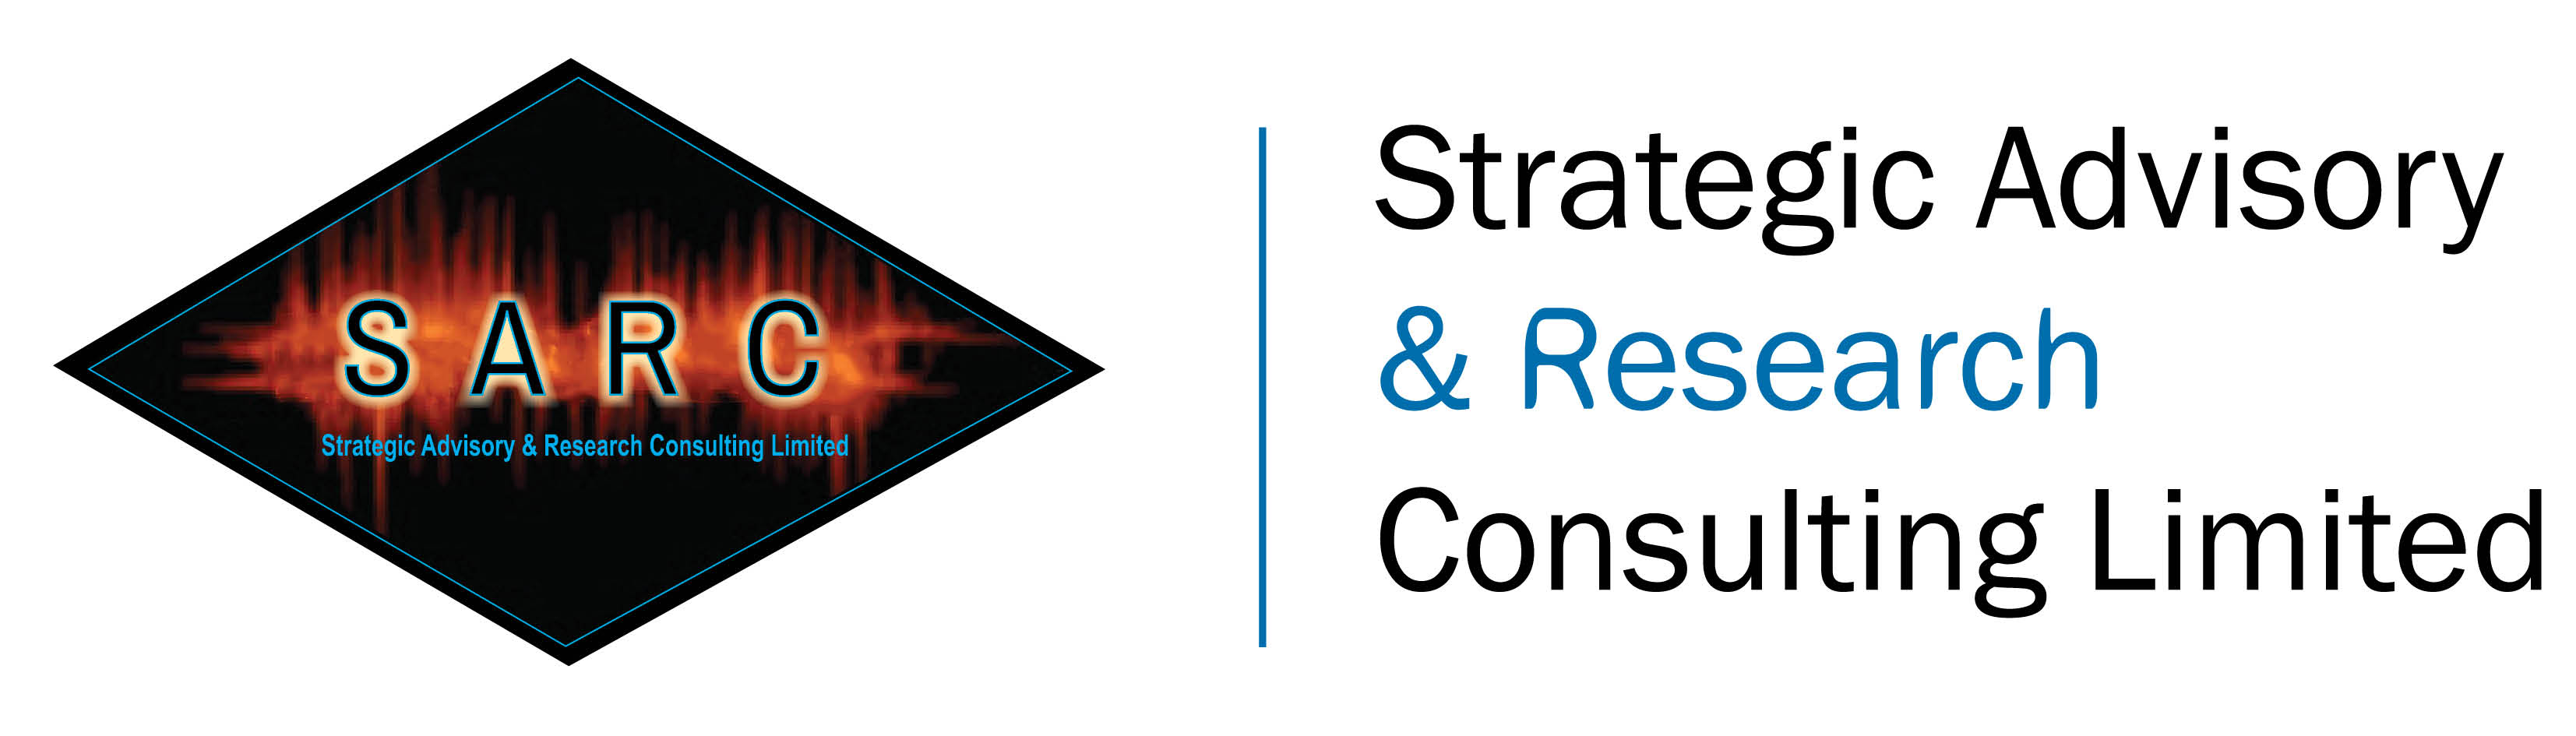 Strategic Advisory & Research Consulting Ltd